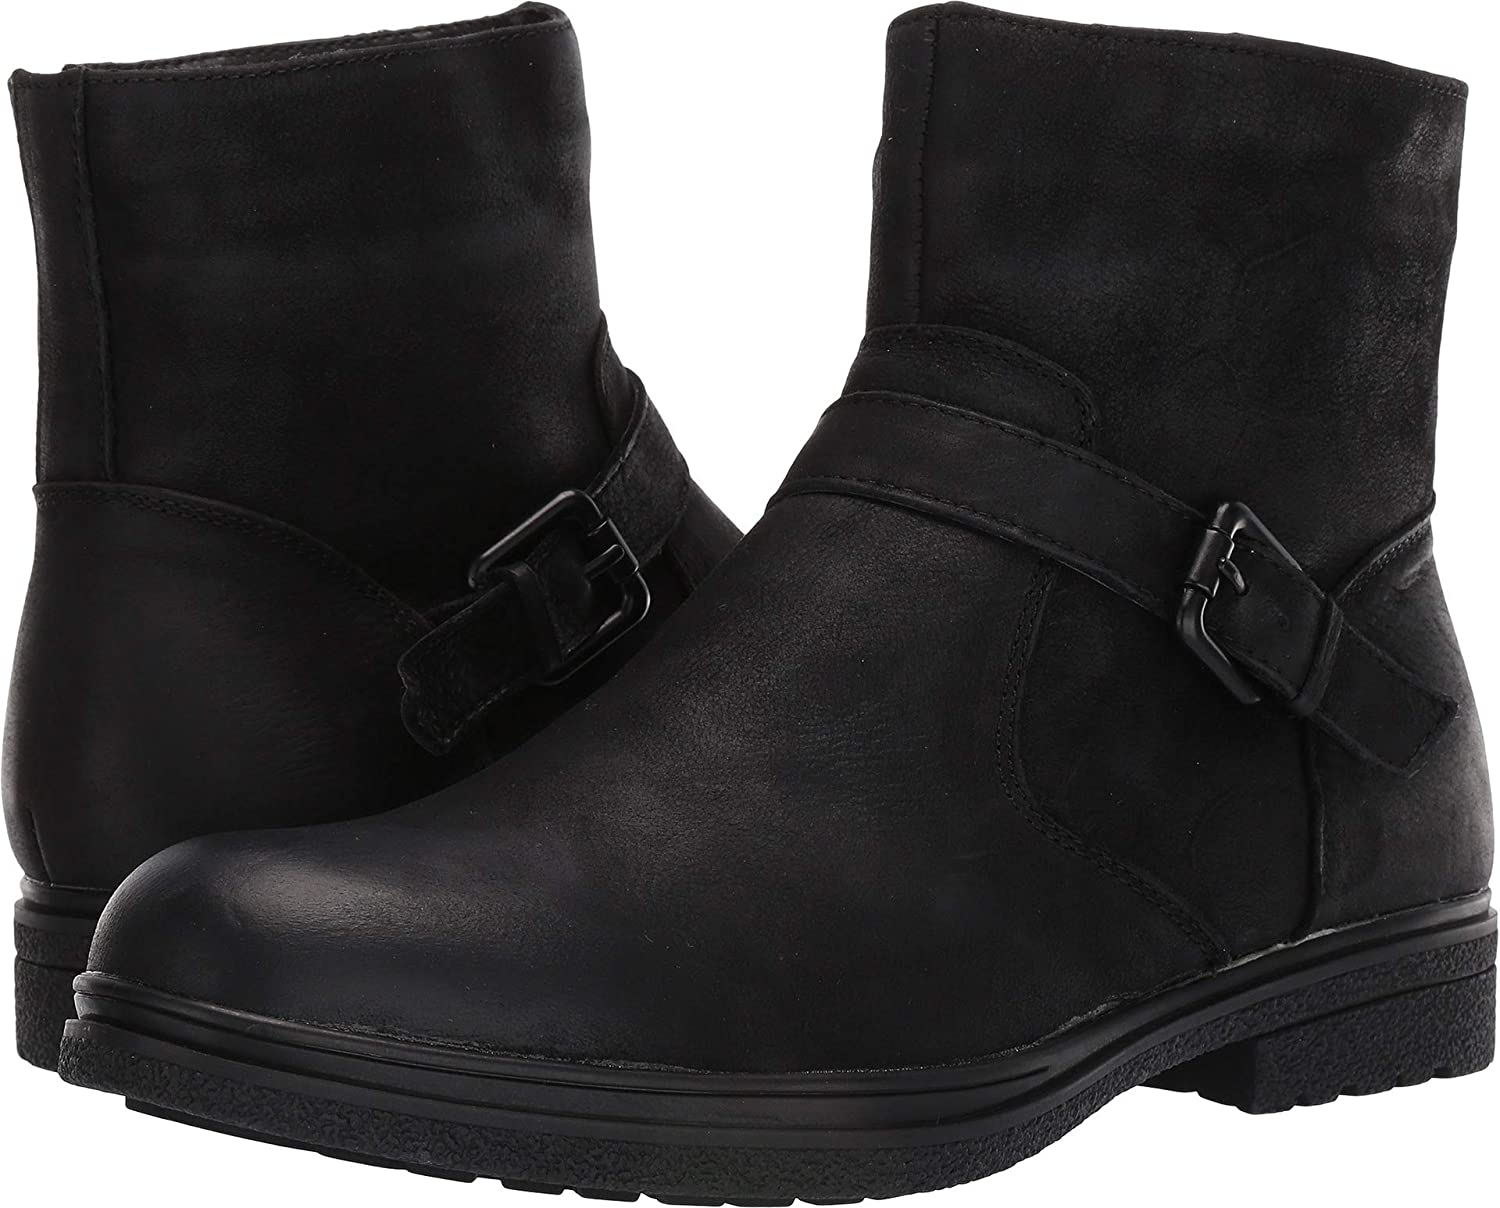 Sylvester Waterproof Buckle Boot   Shoes